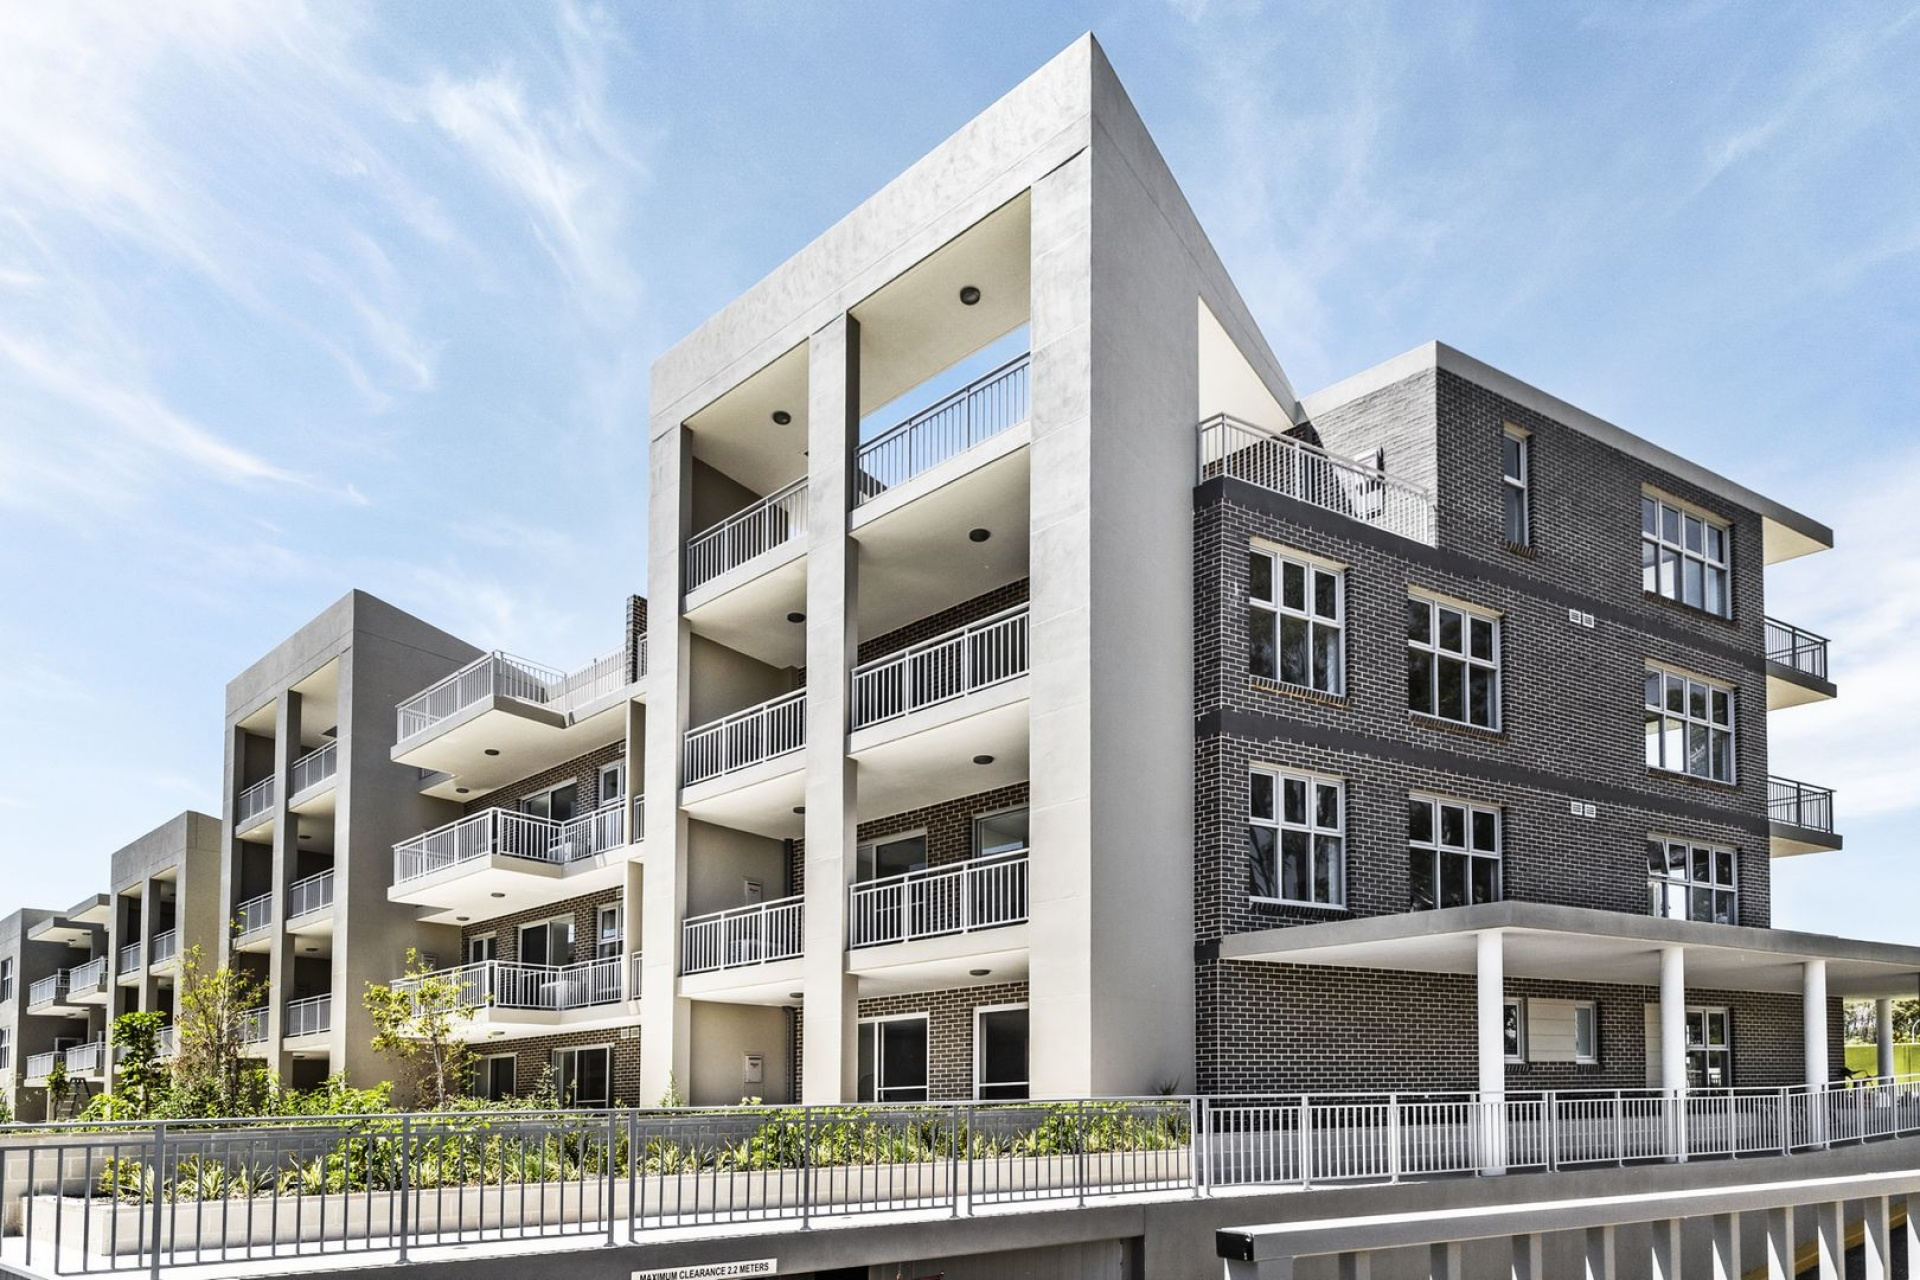 2 Bedrooms, Apartment, Leased, Regent Honey Eater Grove, 2 Bathrooms, Listing ID 1433, North Kellyville , NSW, Australia, 2155,